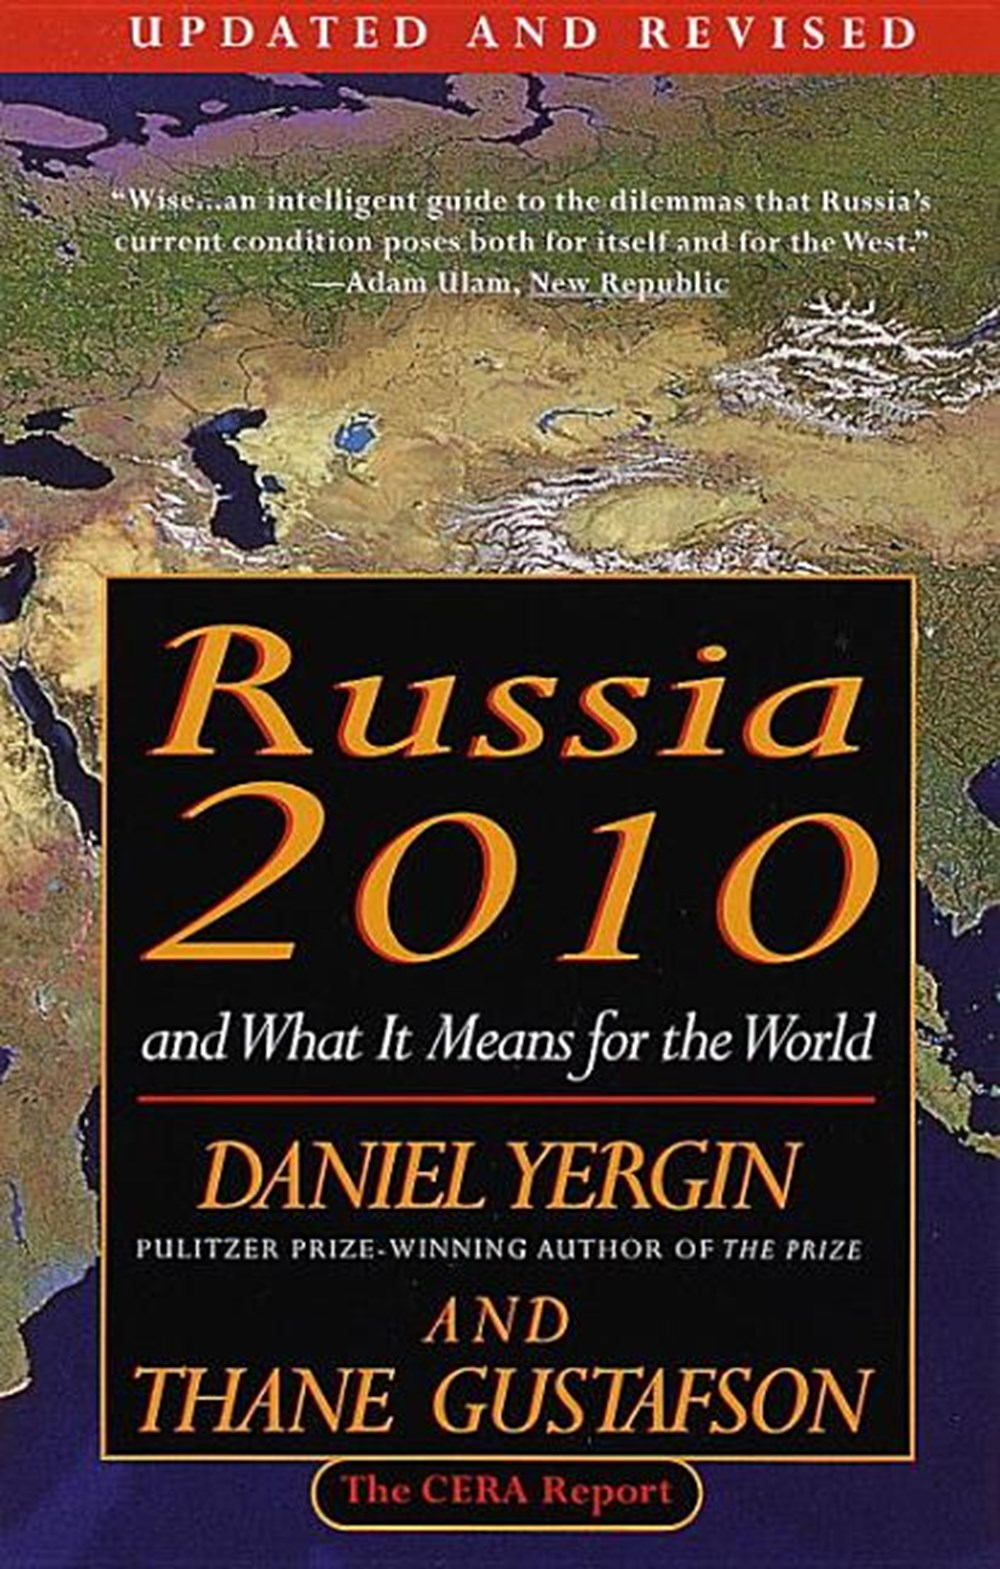 Russia 2010 And What It Means for the World (Revised)